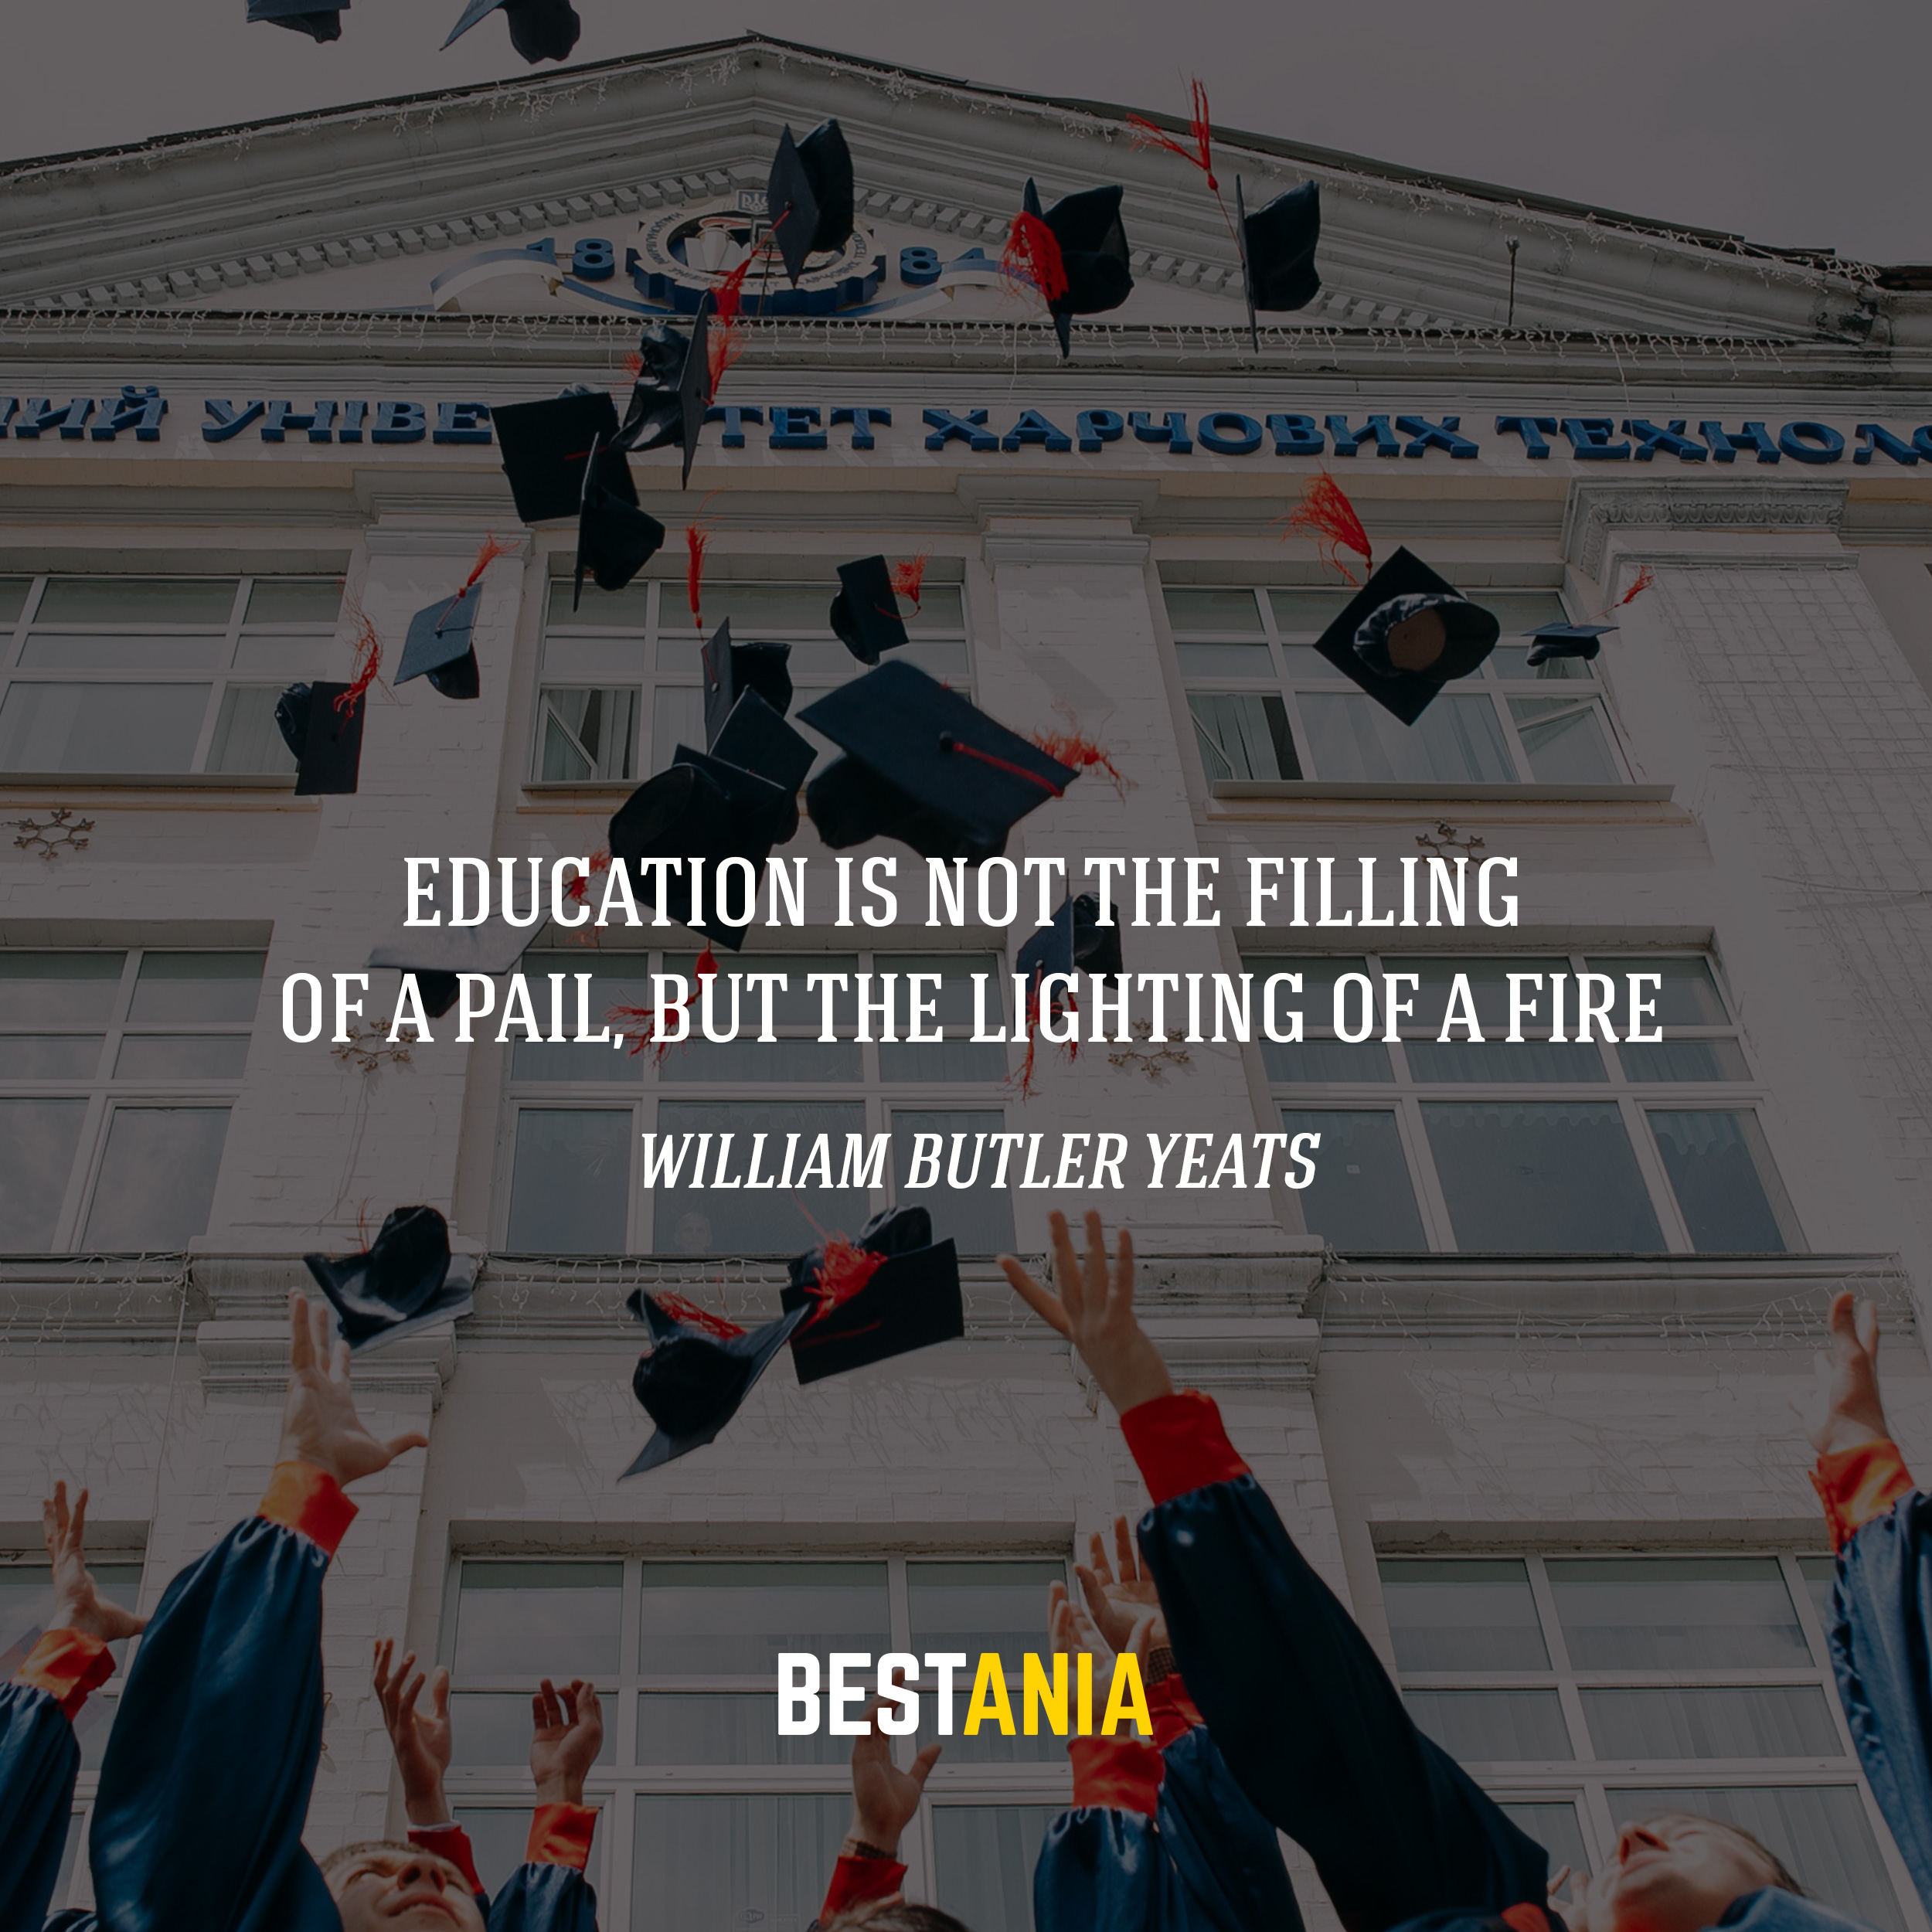 Education is not the filling of a pail, but the lighting of a fire. -William Butler Yeats